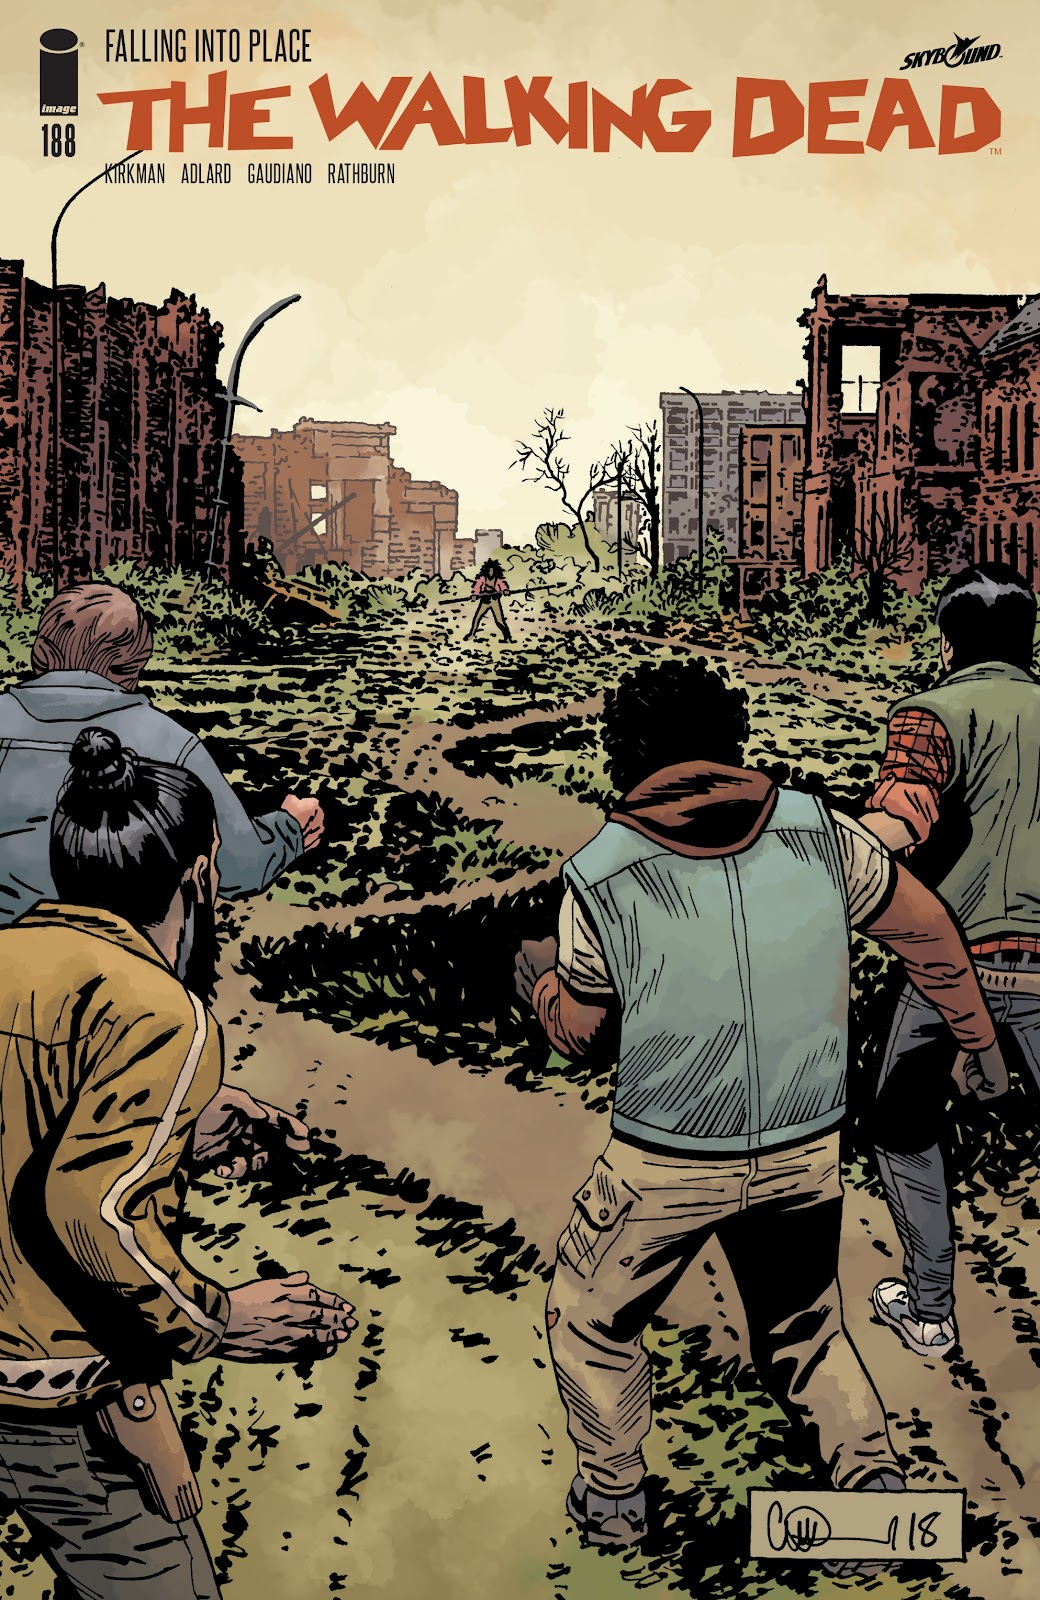 The Walking Dead 188 Page 1